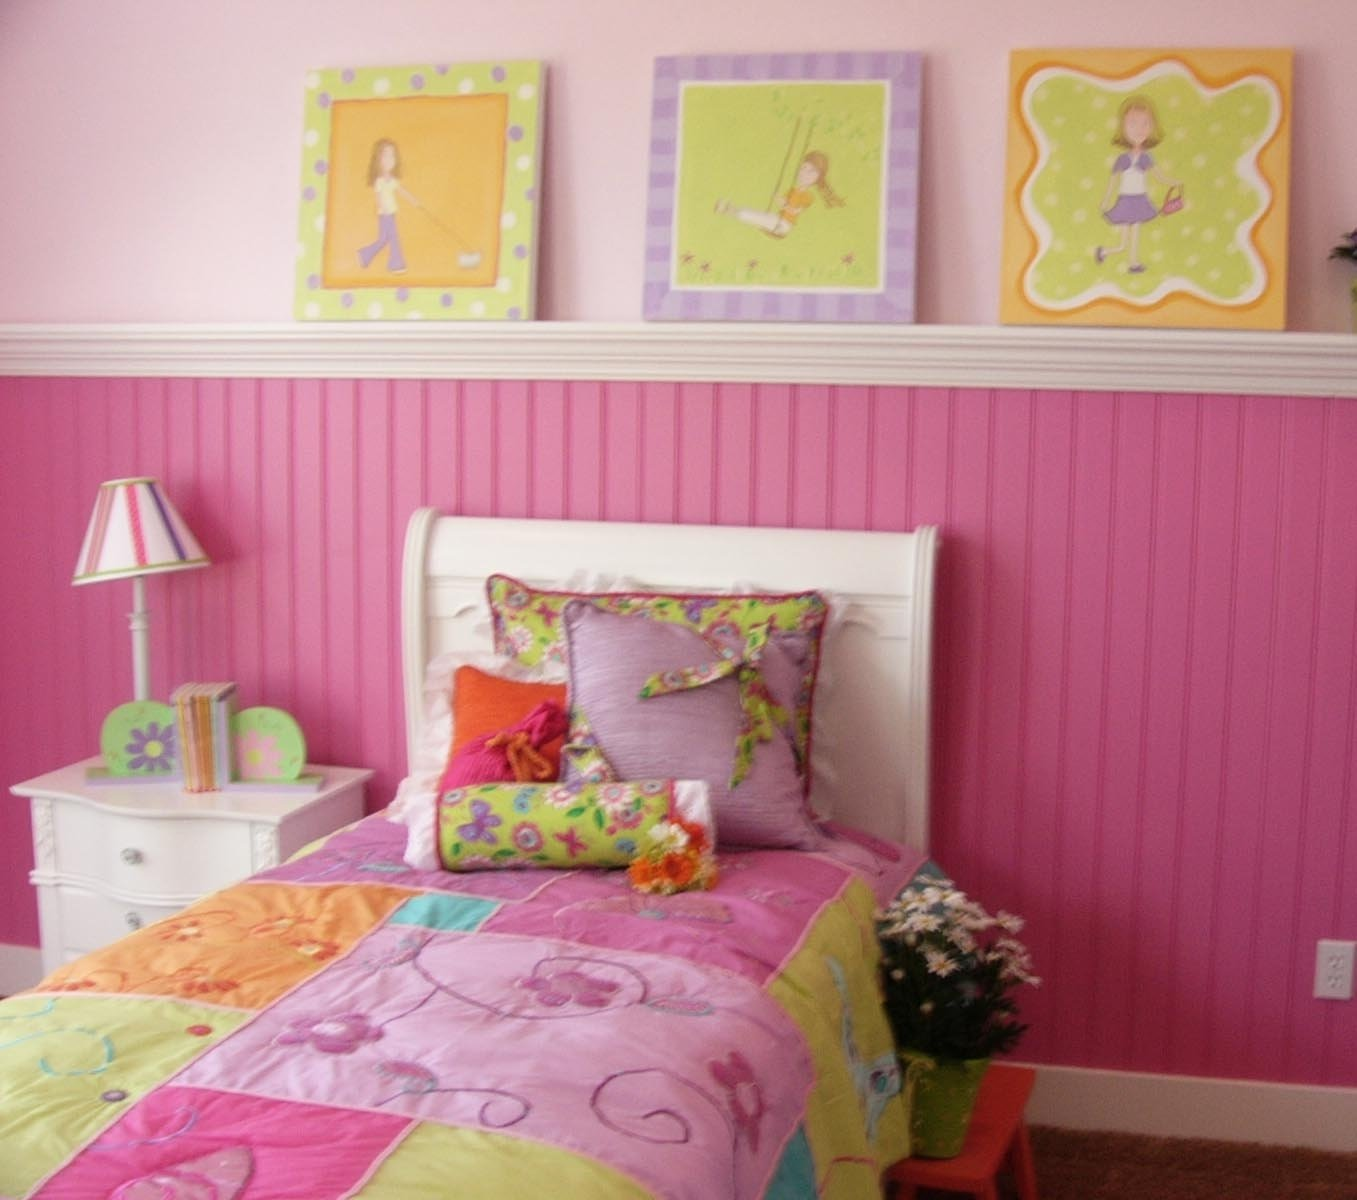 10 Great Room Decorating Ideas For Girls decorating ideas for girls bedroom home design interior 1 2020